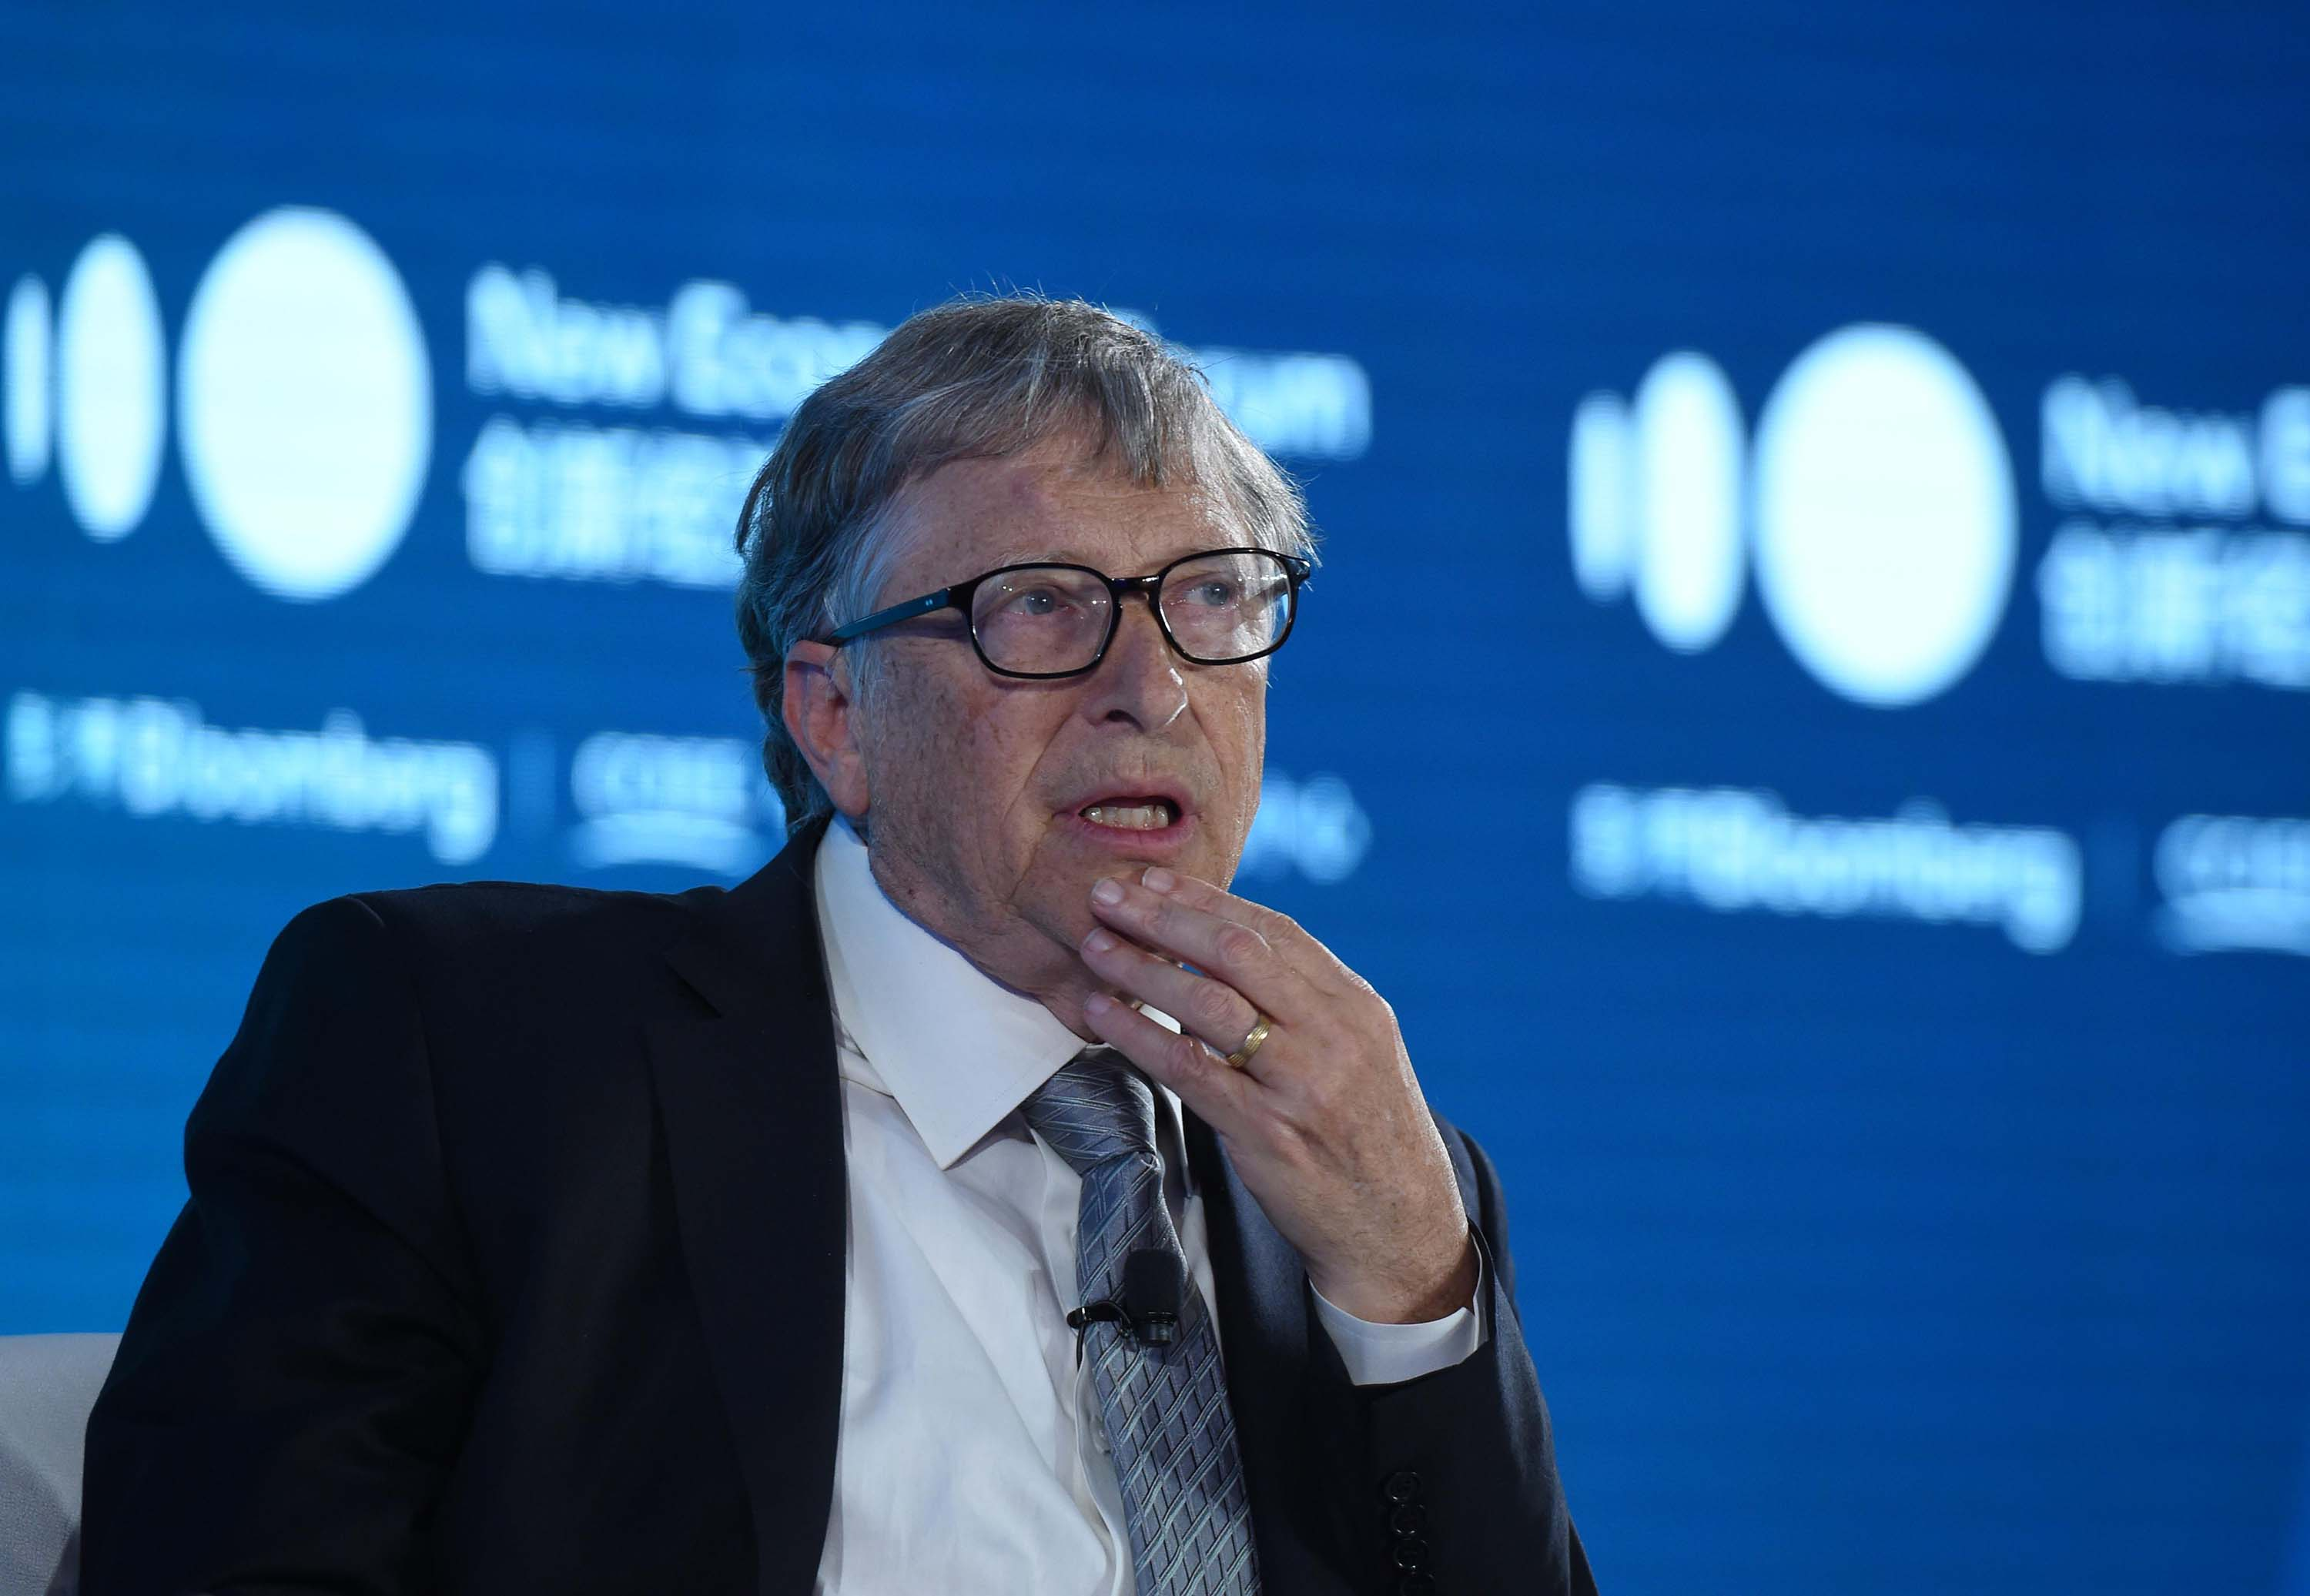 Bill Gates is pictured speaking during an event in Beijing, China, in November 2019.